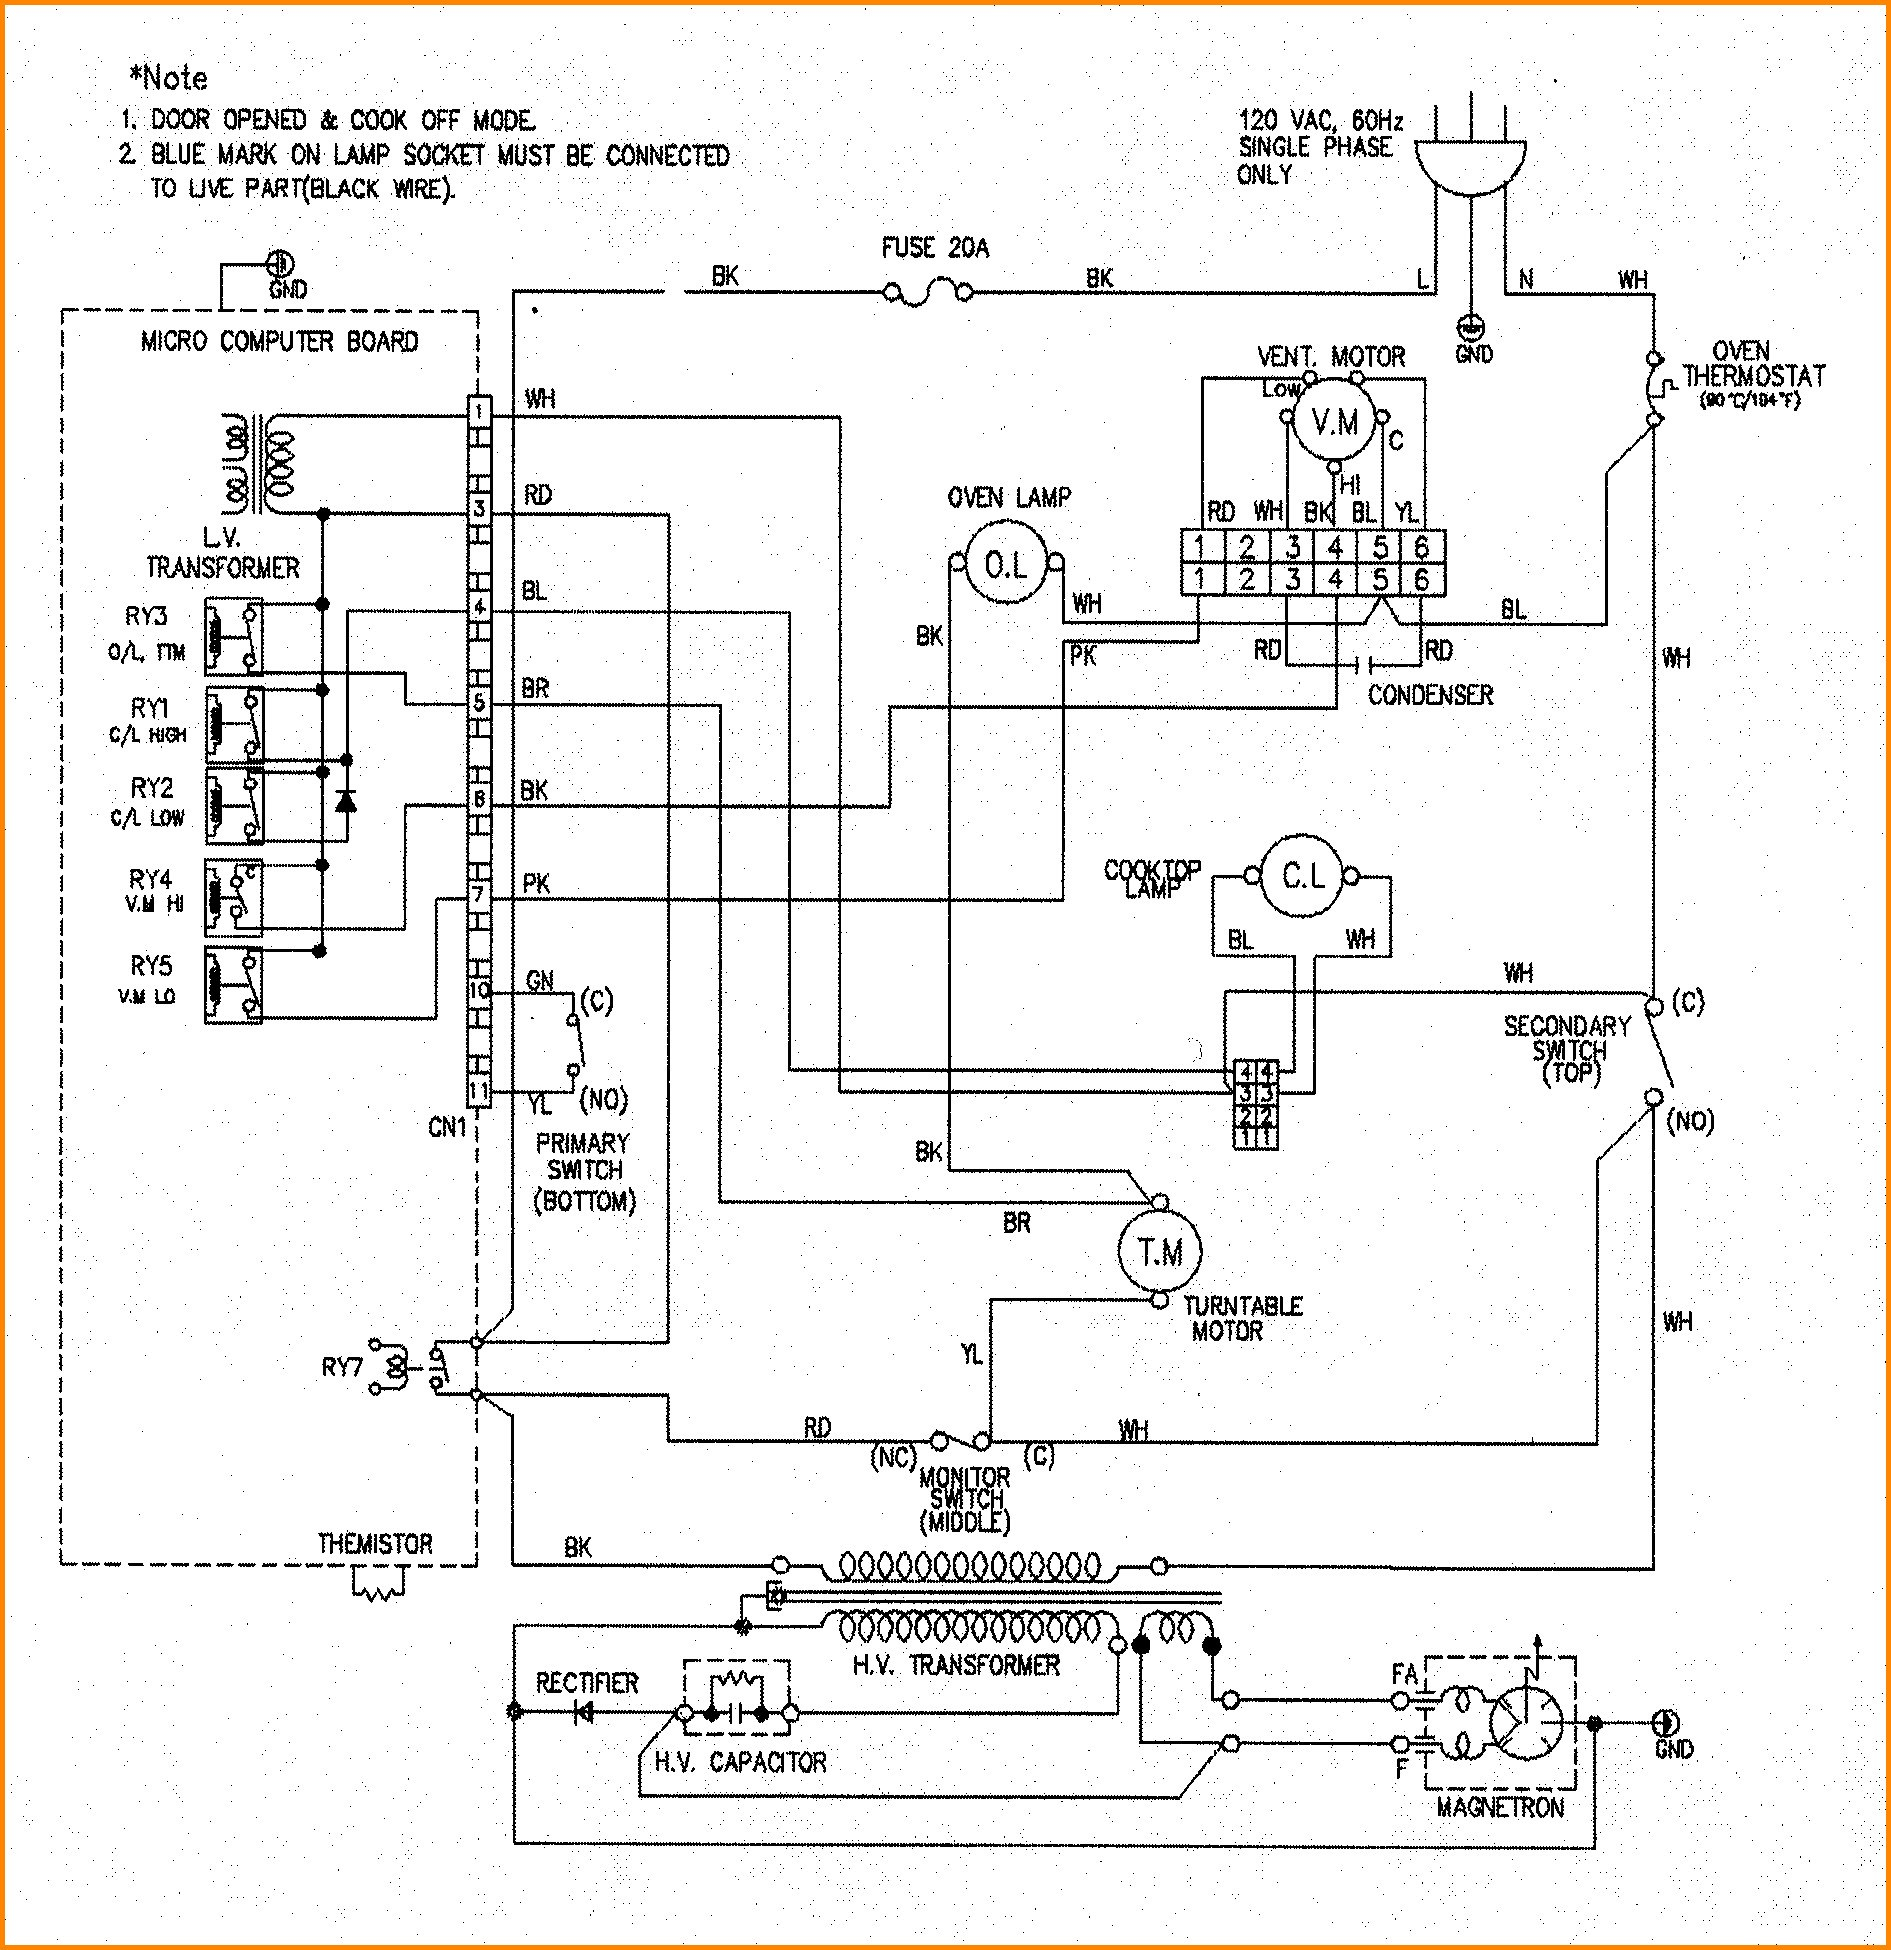 Wiring Diagram For Ge Cooktop - Wiring Diagram M4 on